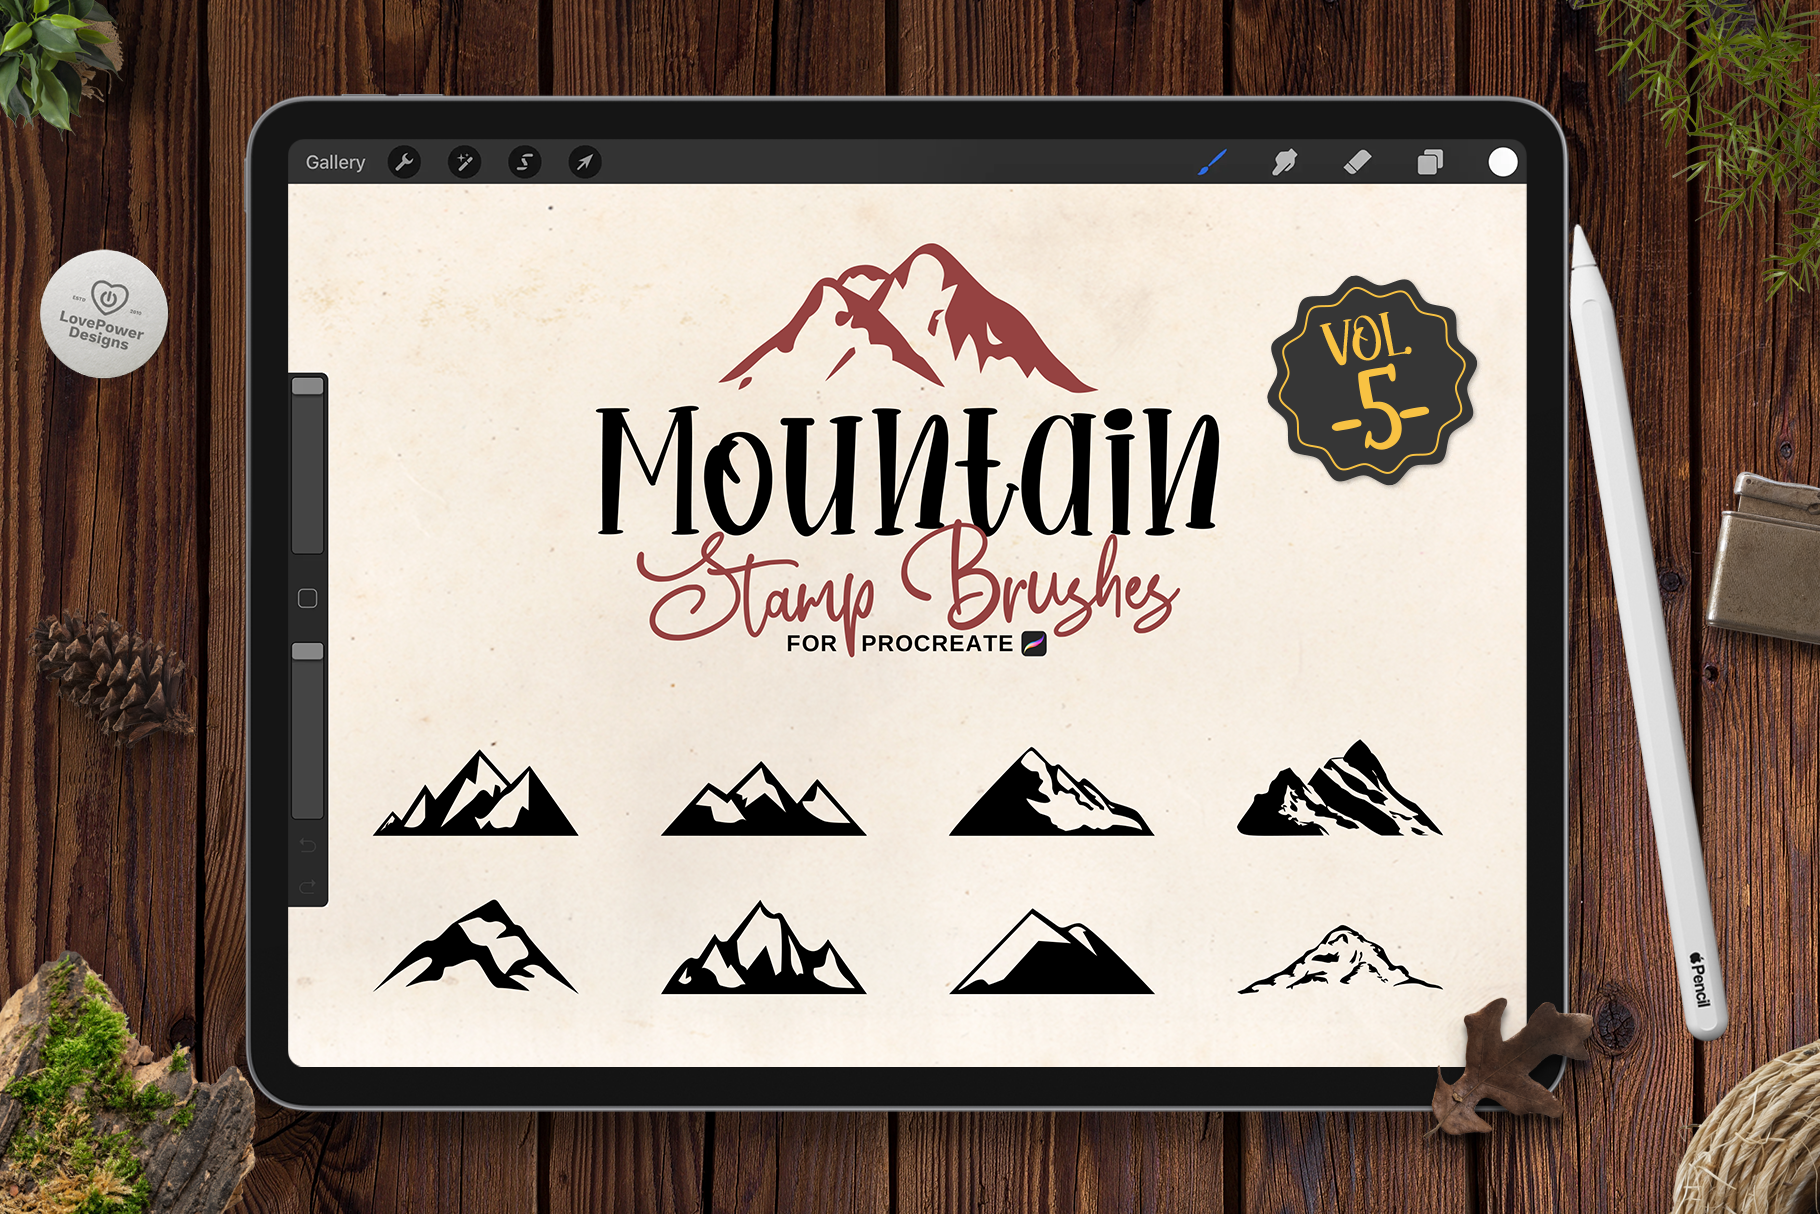 Procreate Stamp Brushes | 9 Mountain Brushes for Procreate Vol5